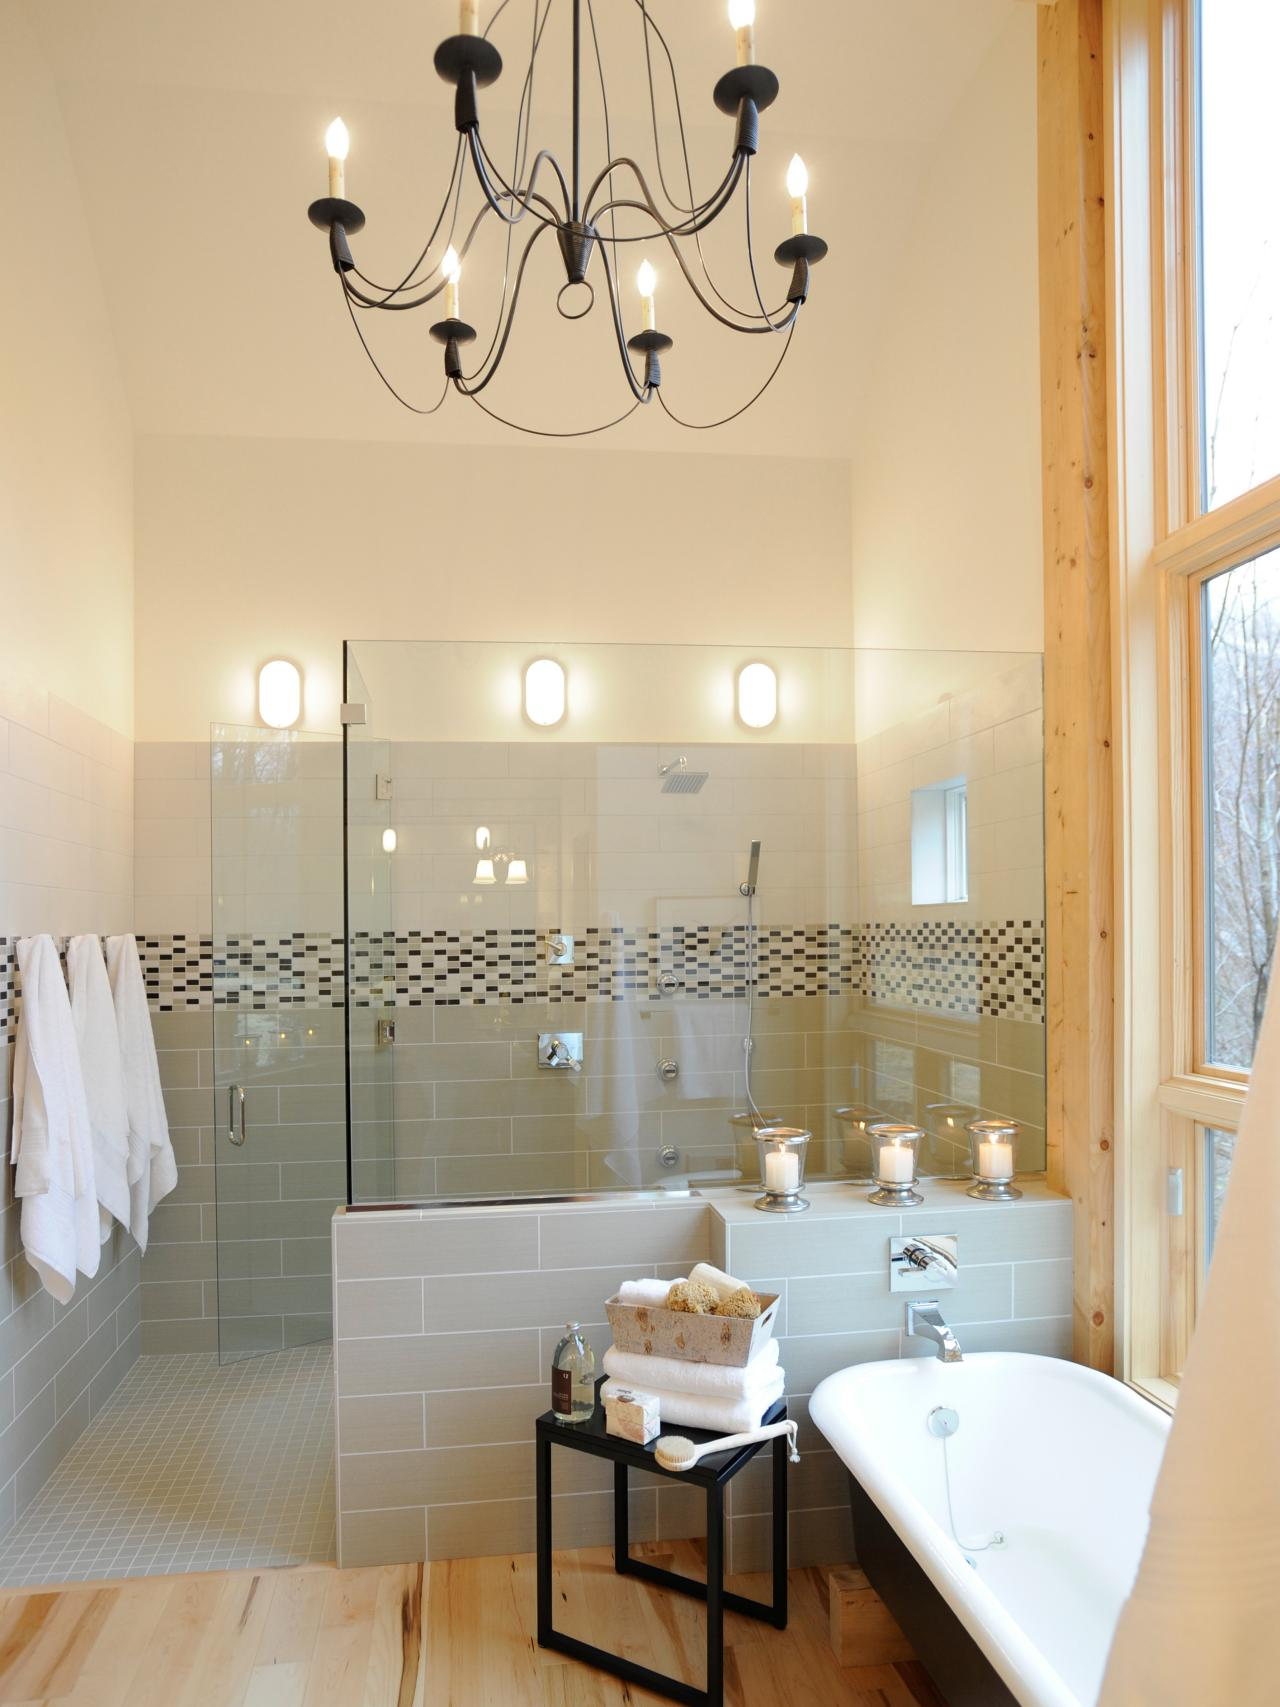 20 luxurious bathrooms with elegant chandelier lighting view in gallery bathroom lighting 3 aloadofball Image collections